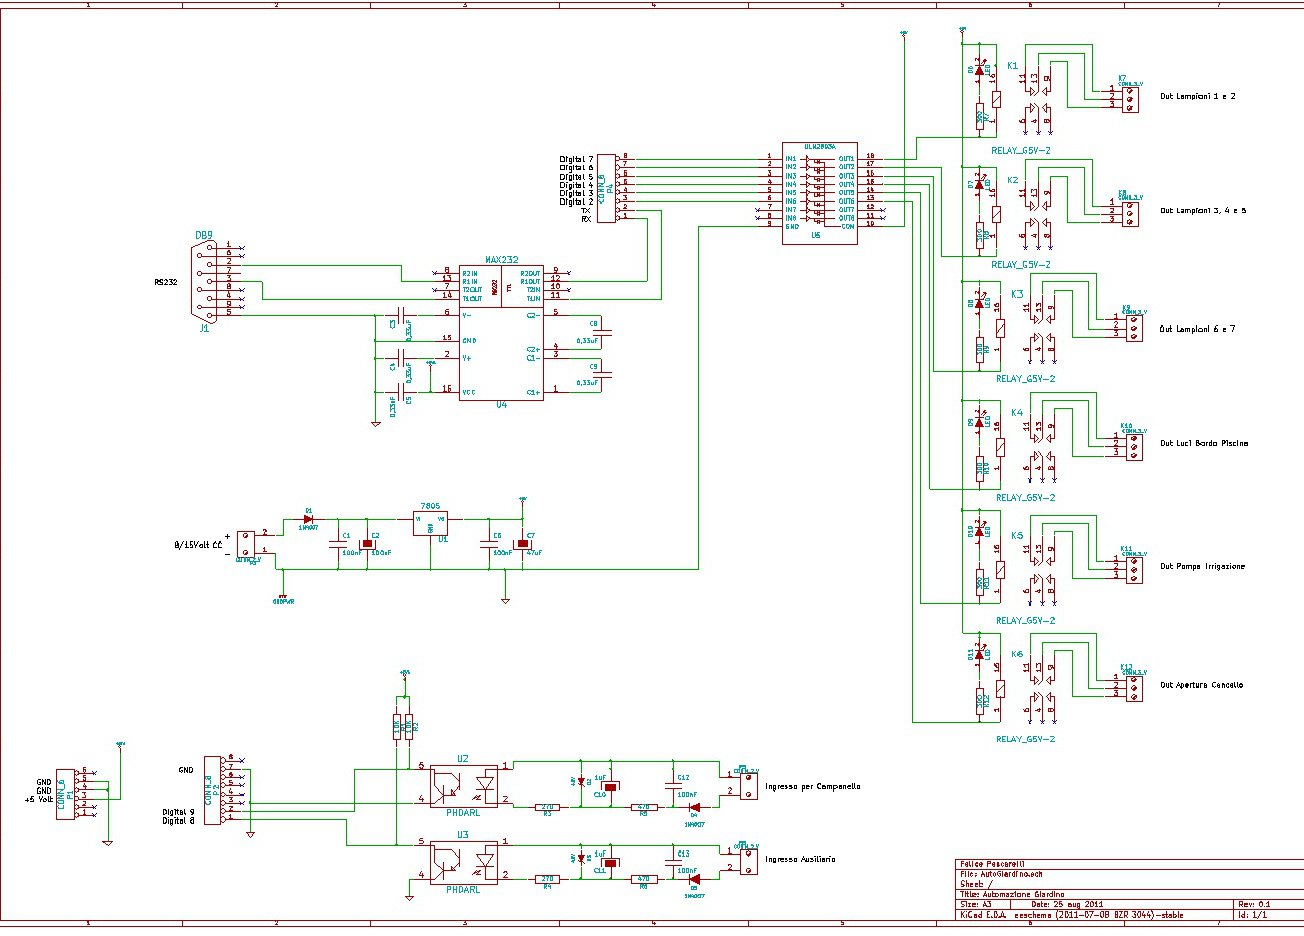 Control Lights And Antitheft With Arduino Via Bluetooth Open Circuit Diagram Electronic Design Before You Start The Software Automazione Giardino On Pc We Associate Using Appropriate Utility Module